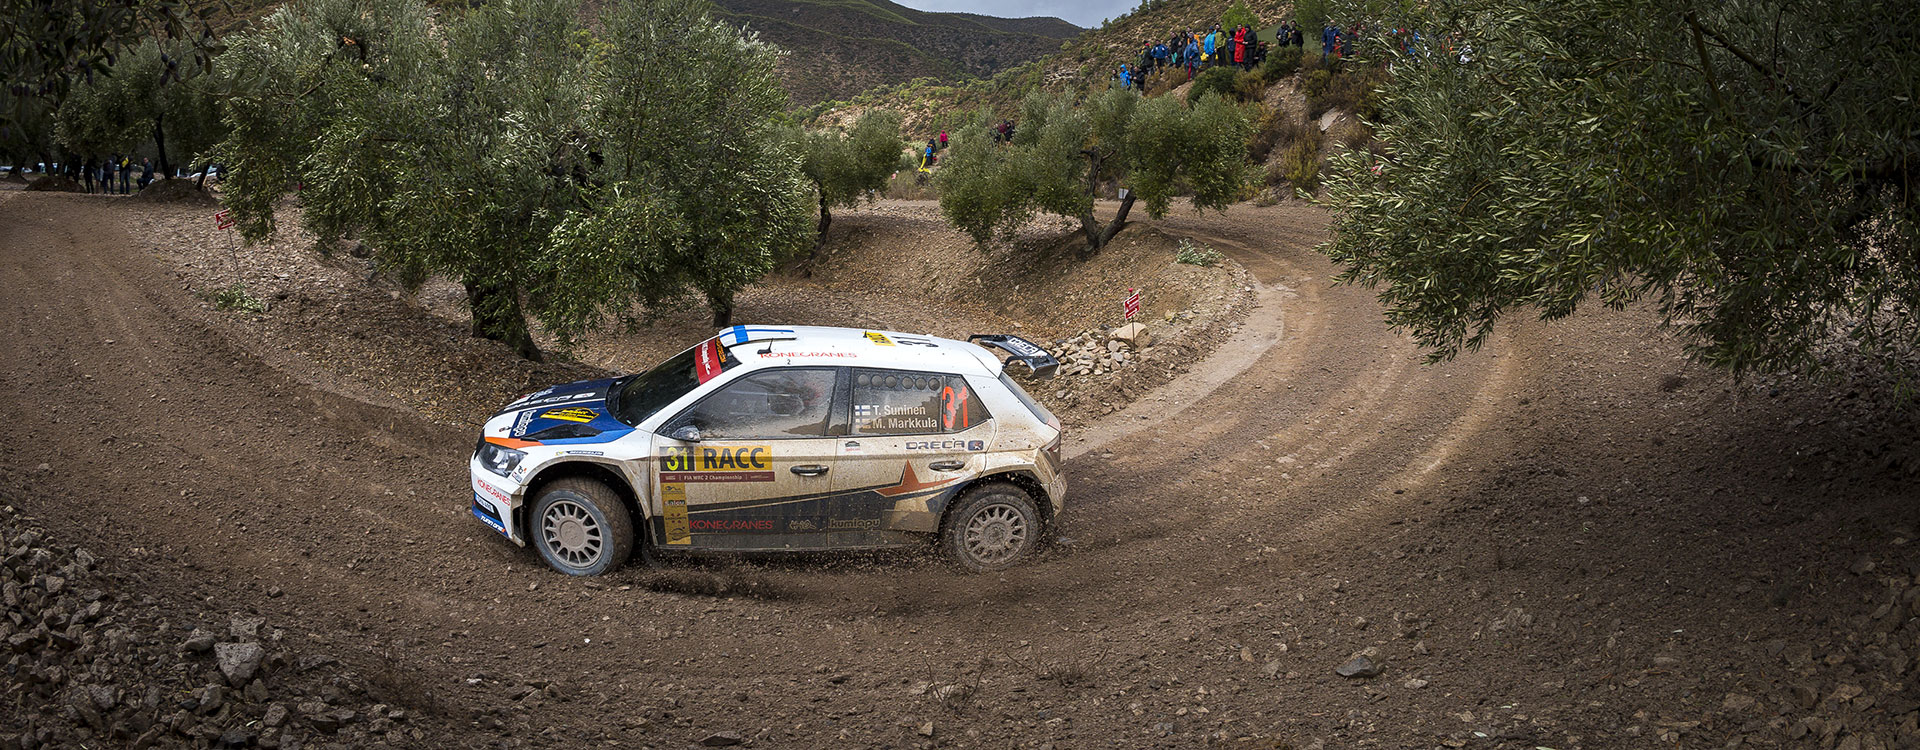 WRC Great Britain: ŠKODA Customer Teams ready to tackle Welsh forest roads